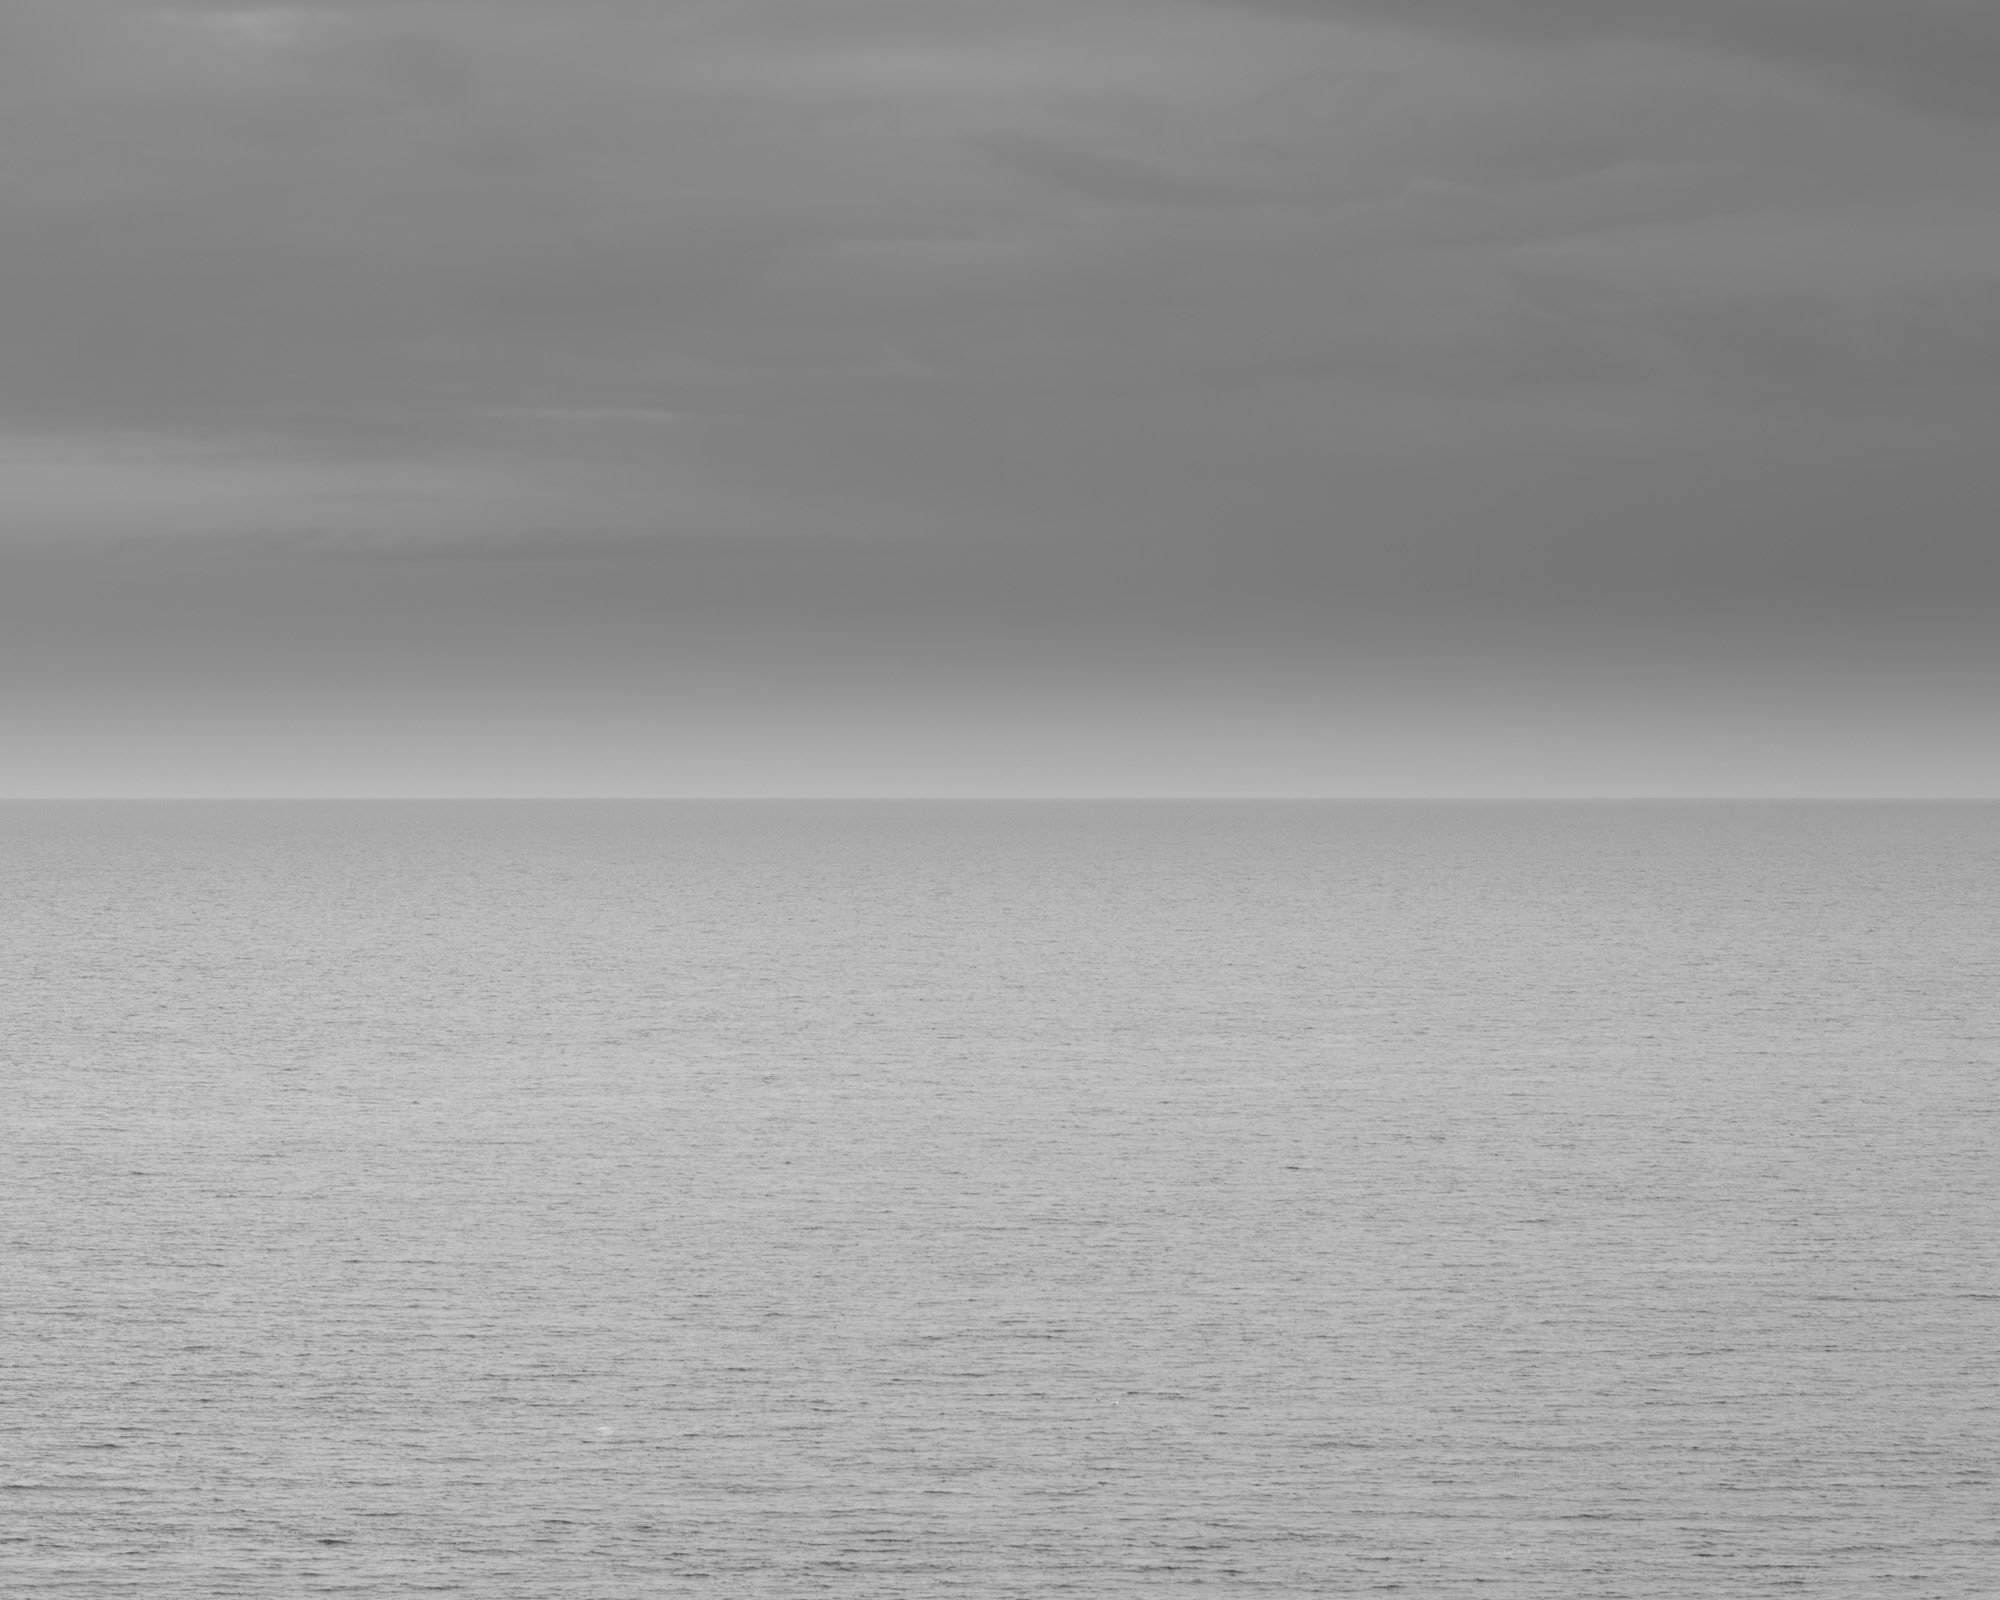 Seascape, Scotland 2014